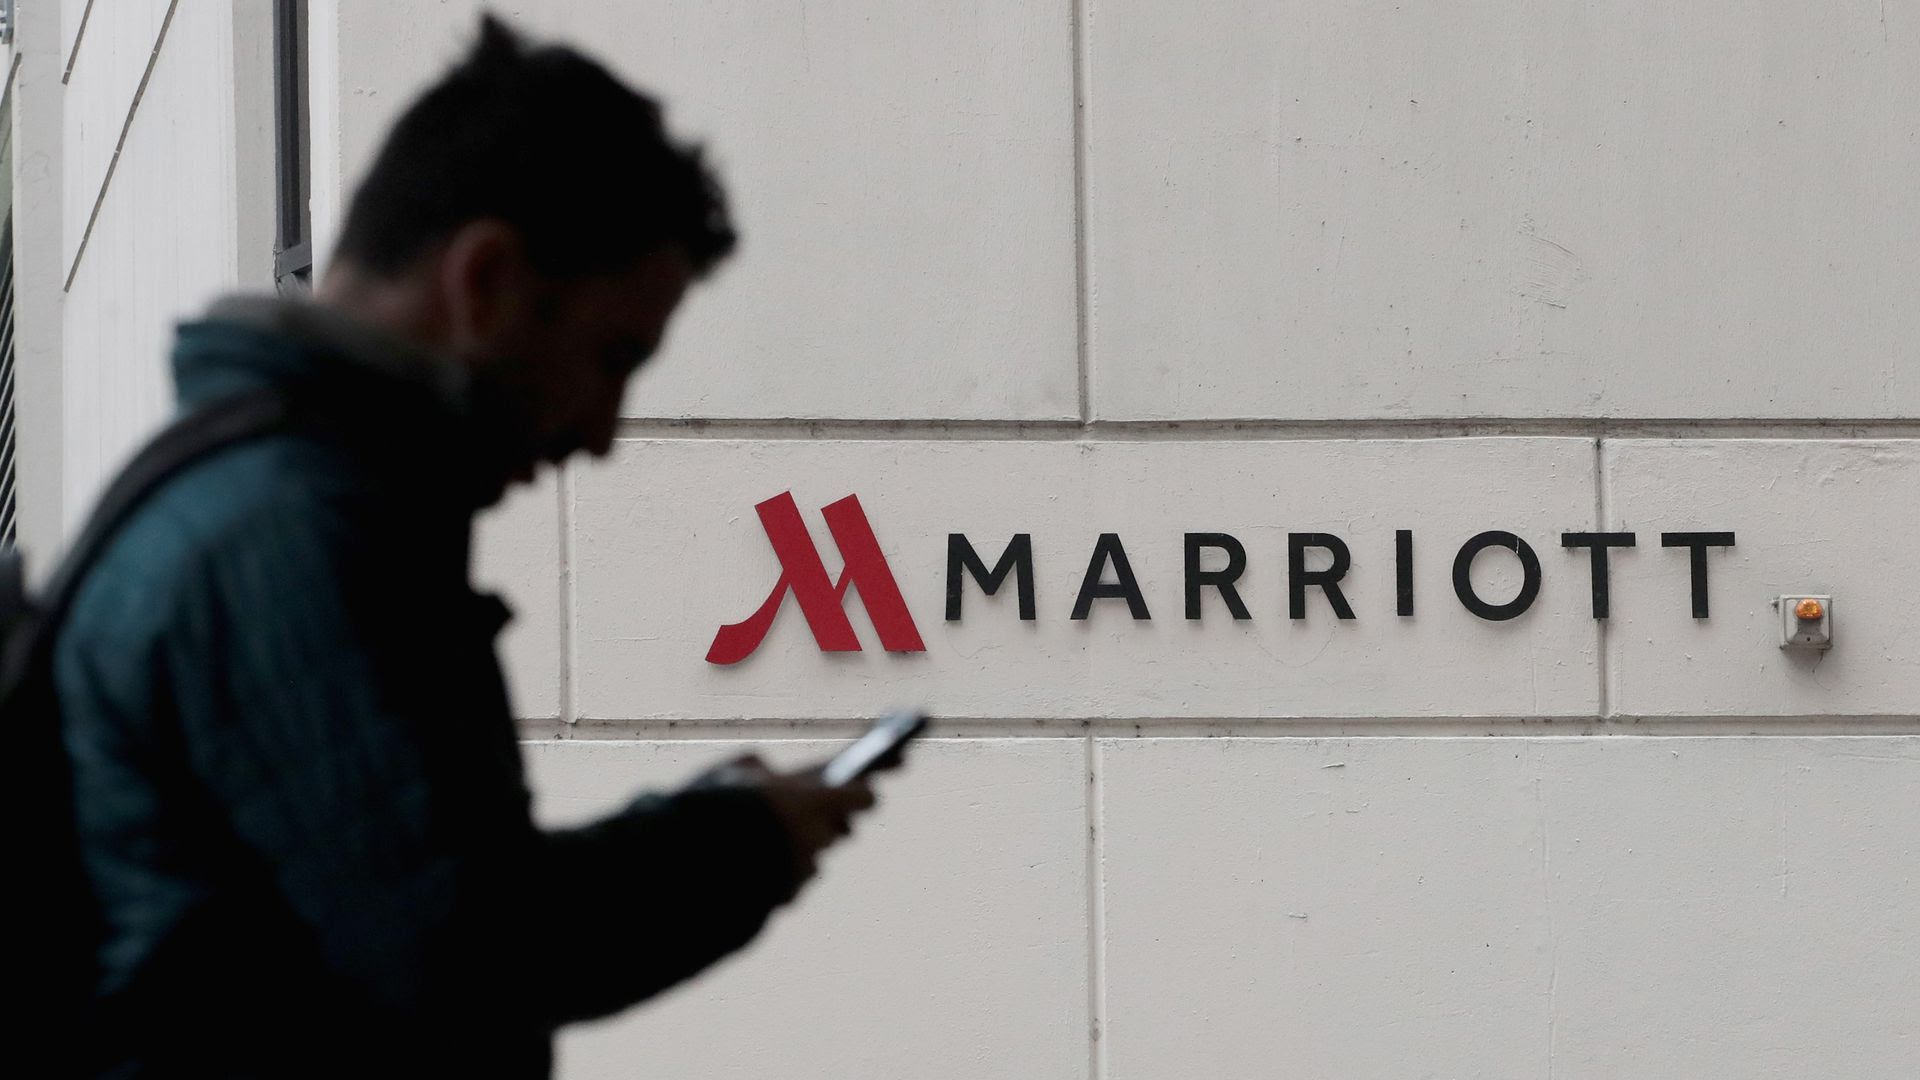 A man walks by the Marriott logo